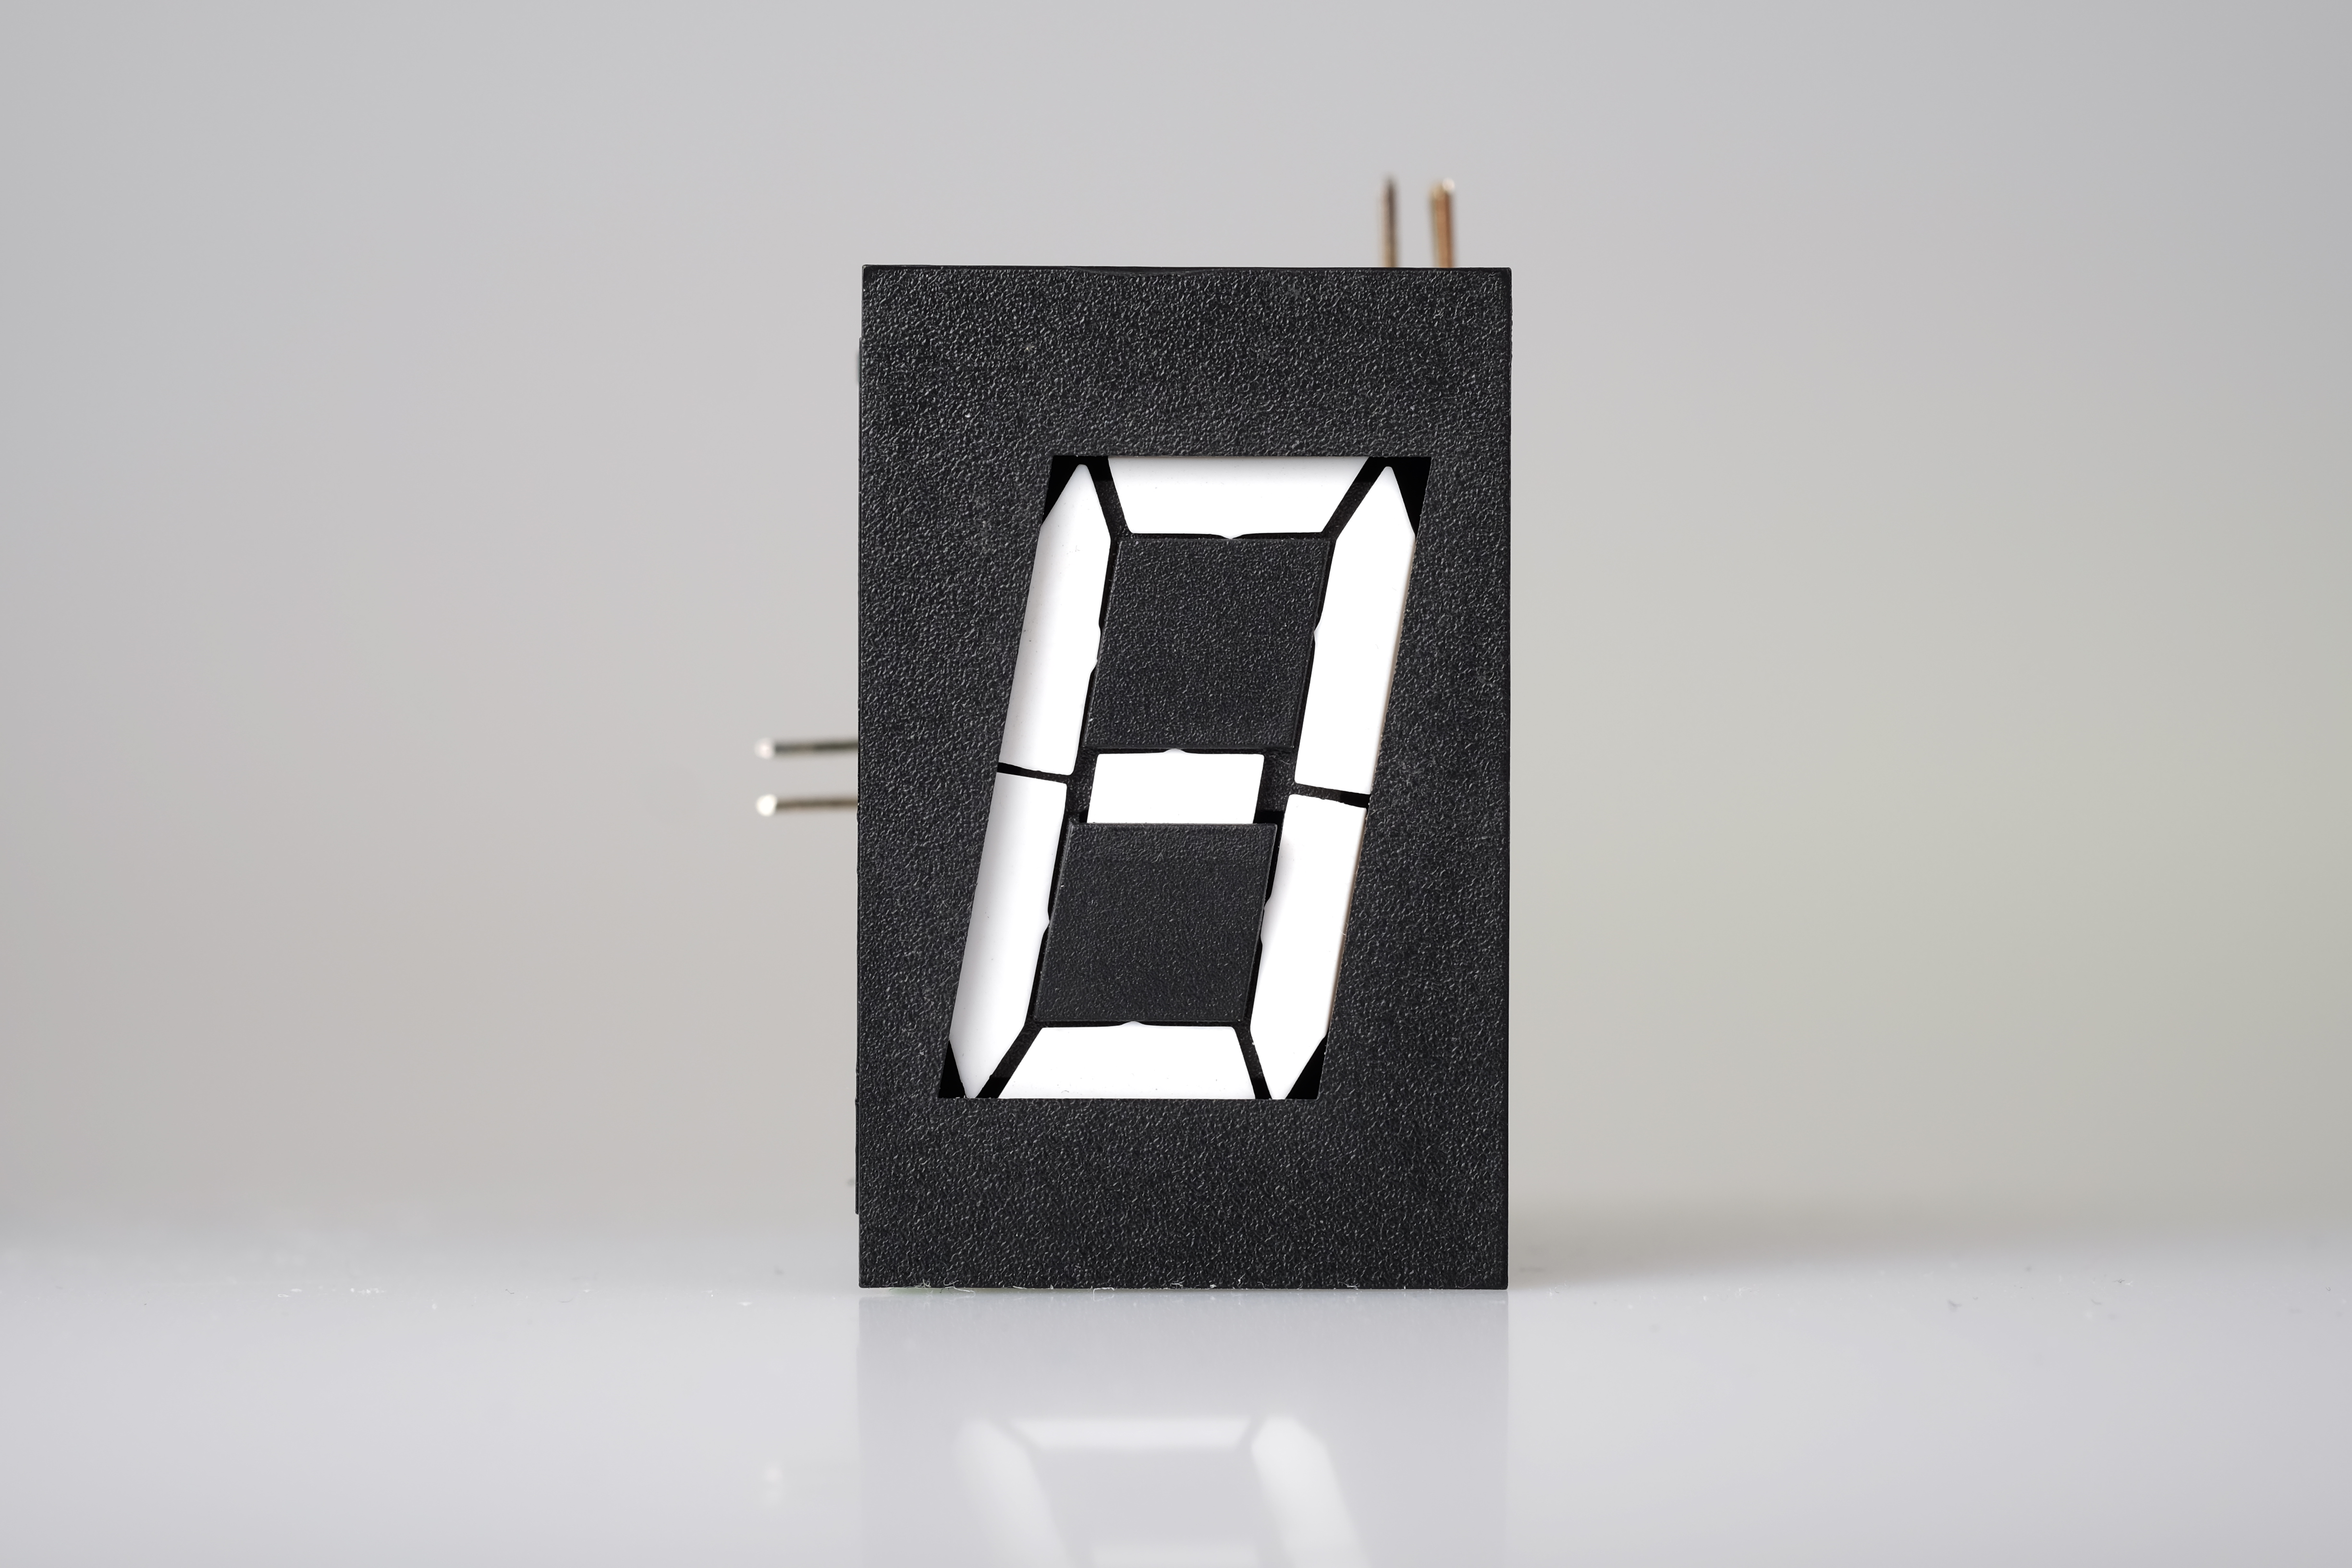 Electromagnetic Flip Digit Display Components Alfazeta 42 What Happens When A Circuit Is On The Complete Lights Consisting Of 7 Operated Light Reflecting Segments Module Can Digits 0 9 Plus Limited